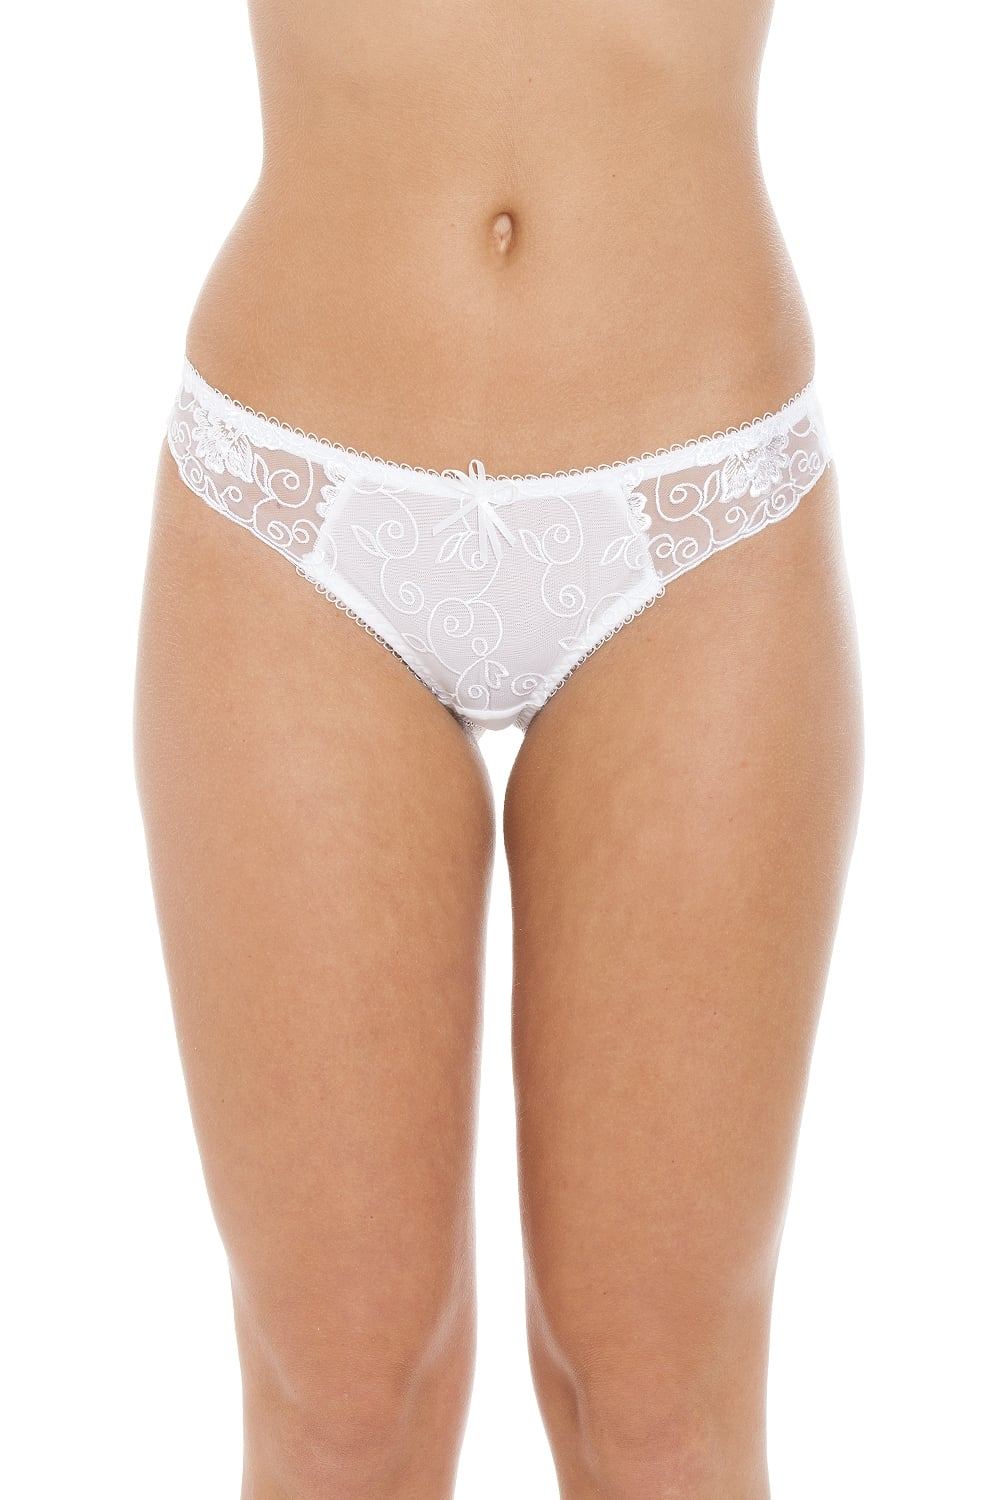 87ca69ec56c4 Womens Ladies Florence Sheer Mesh Embroidered Lace Thong In White ...